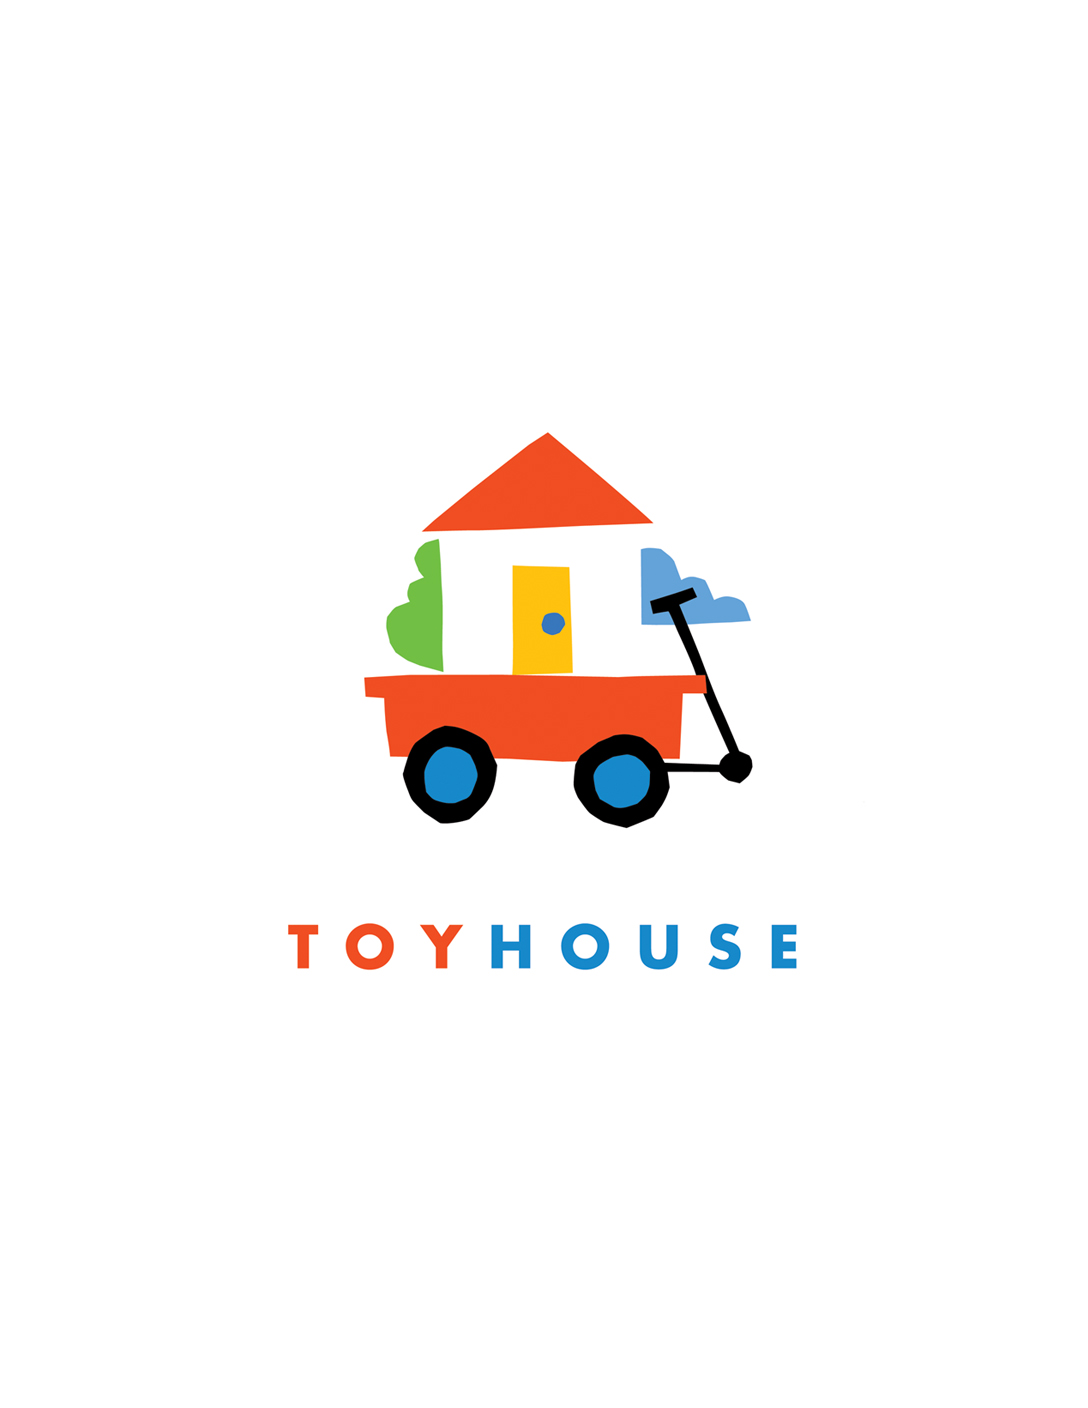 Toyhouse.logo.jpg